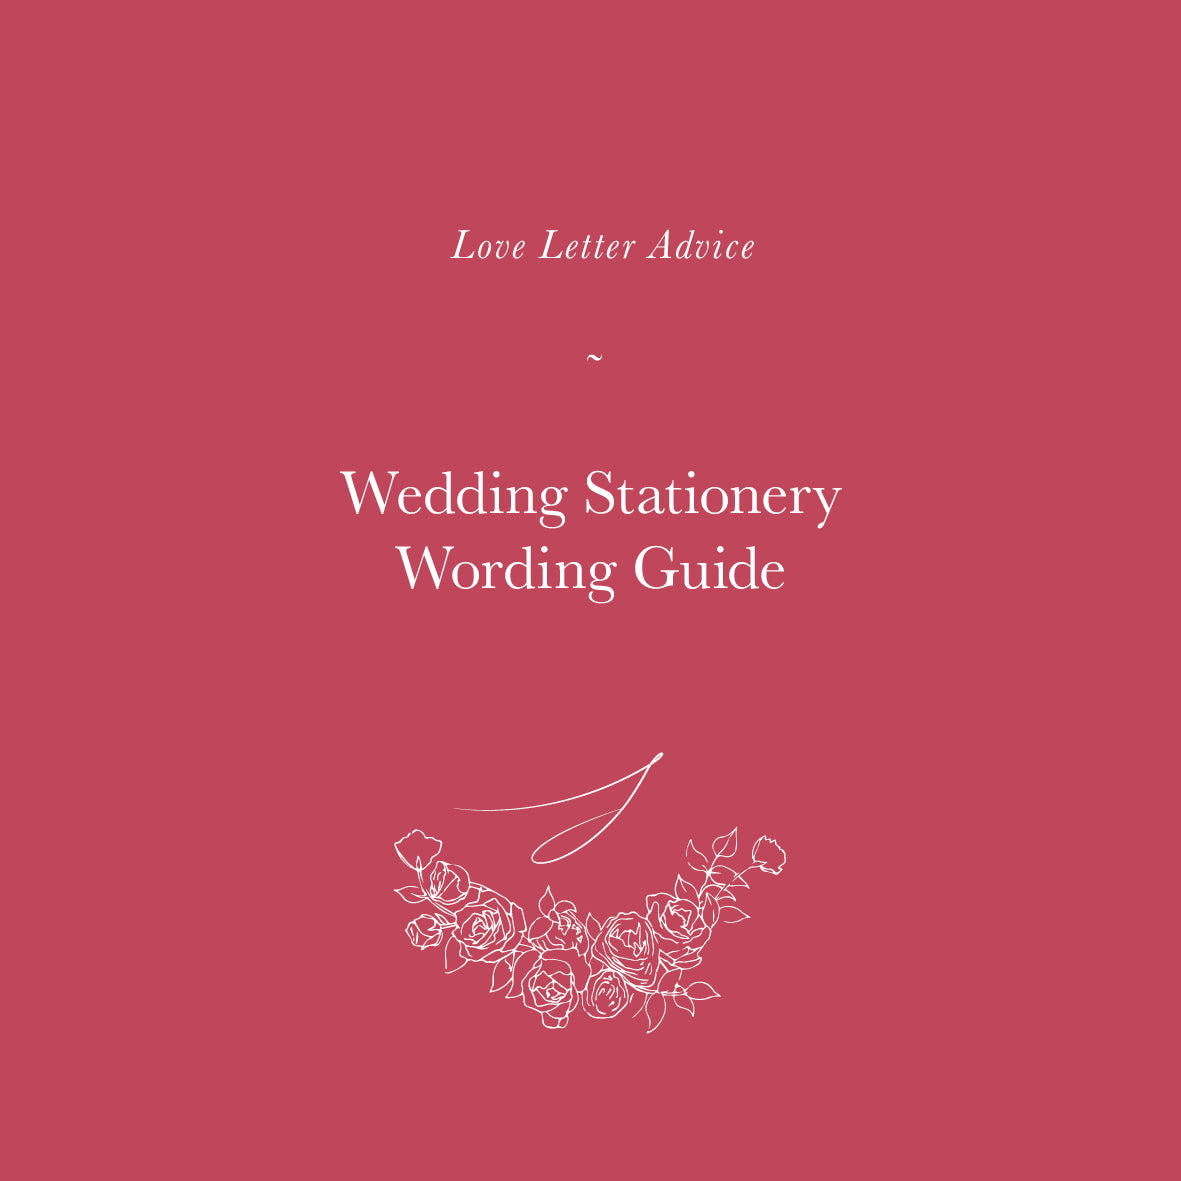 Wedding Stationery Wording Guide